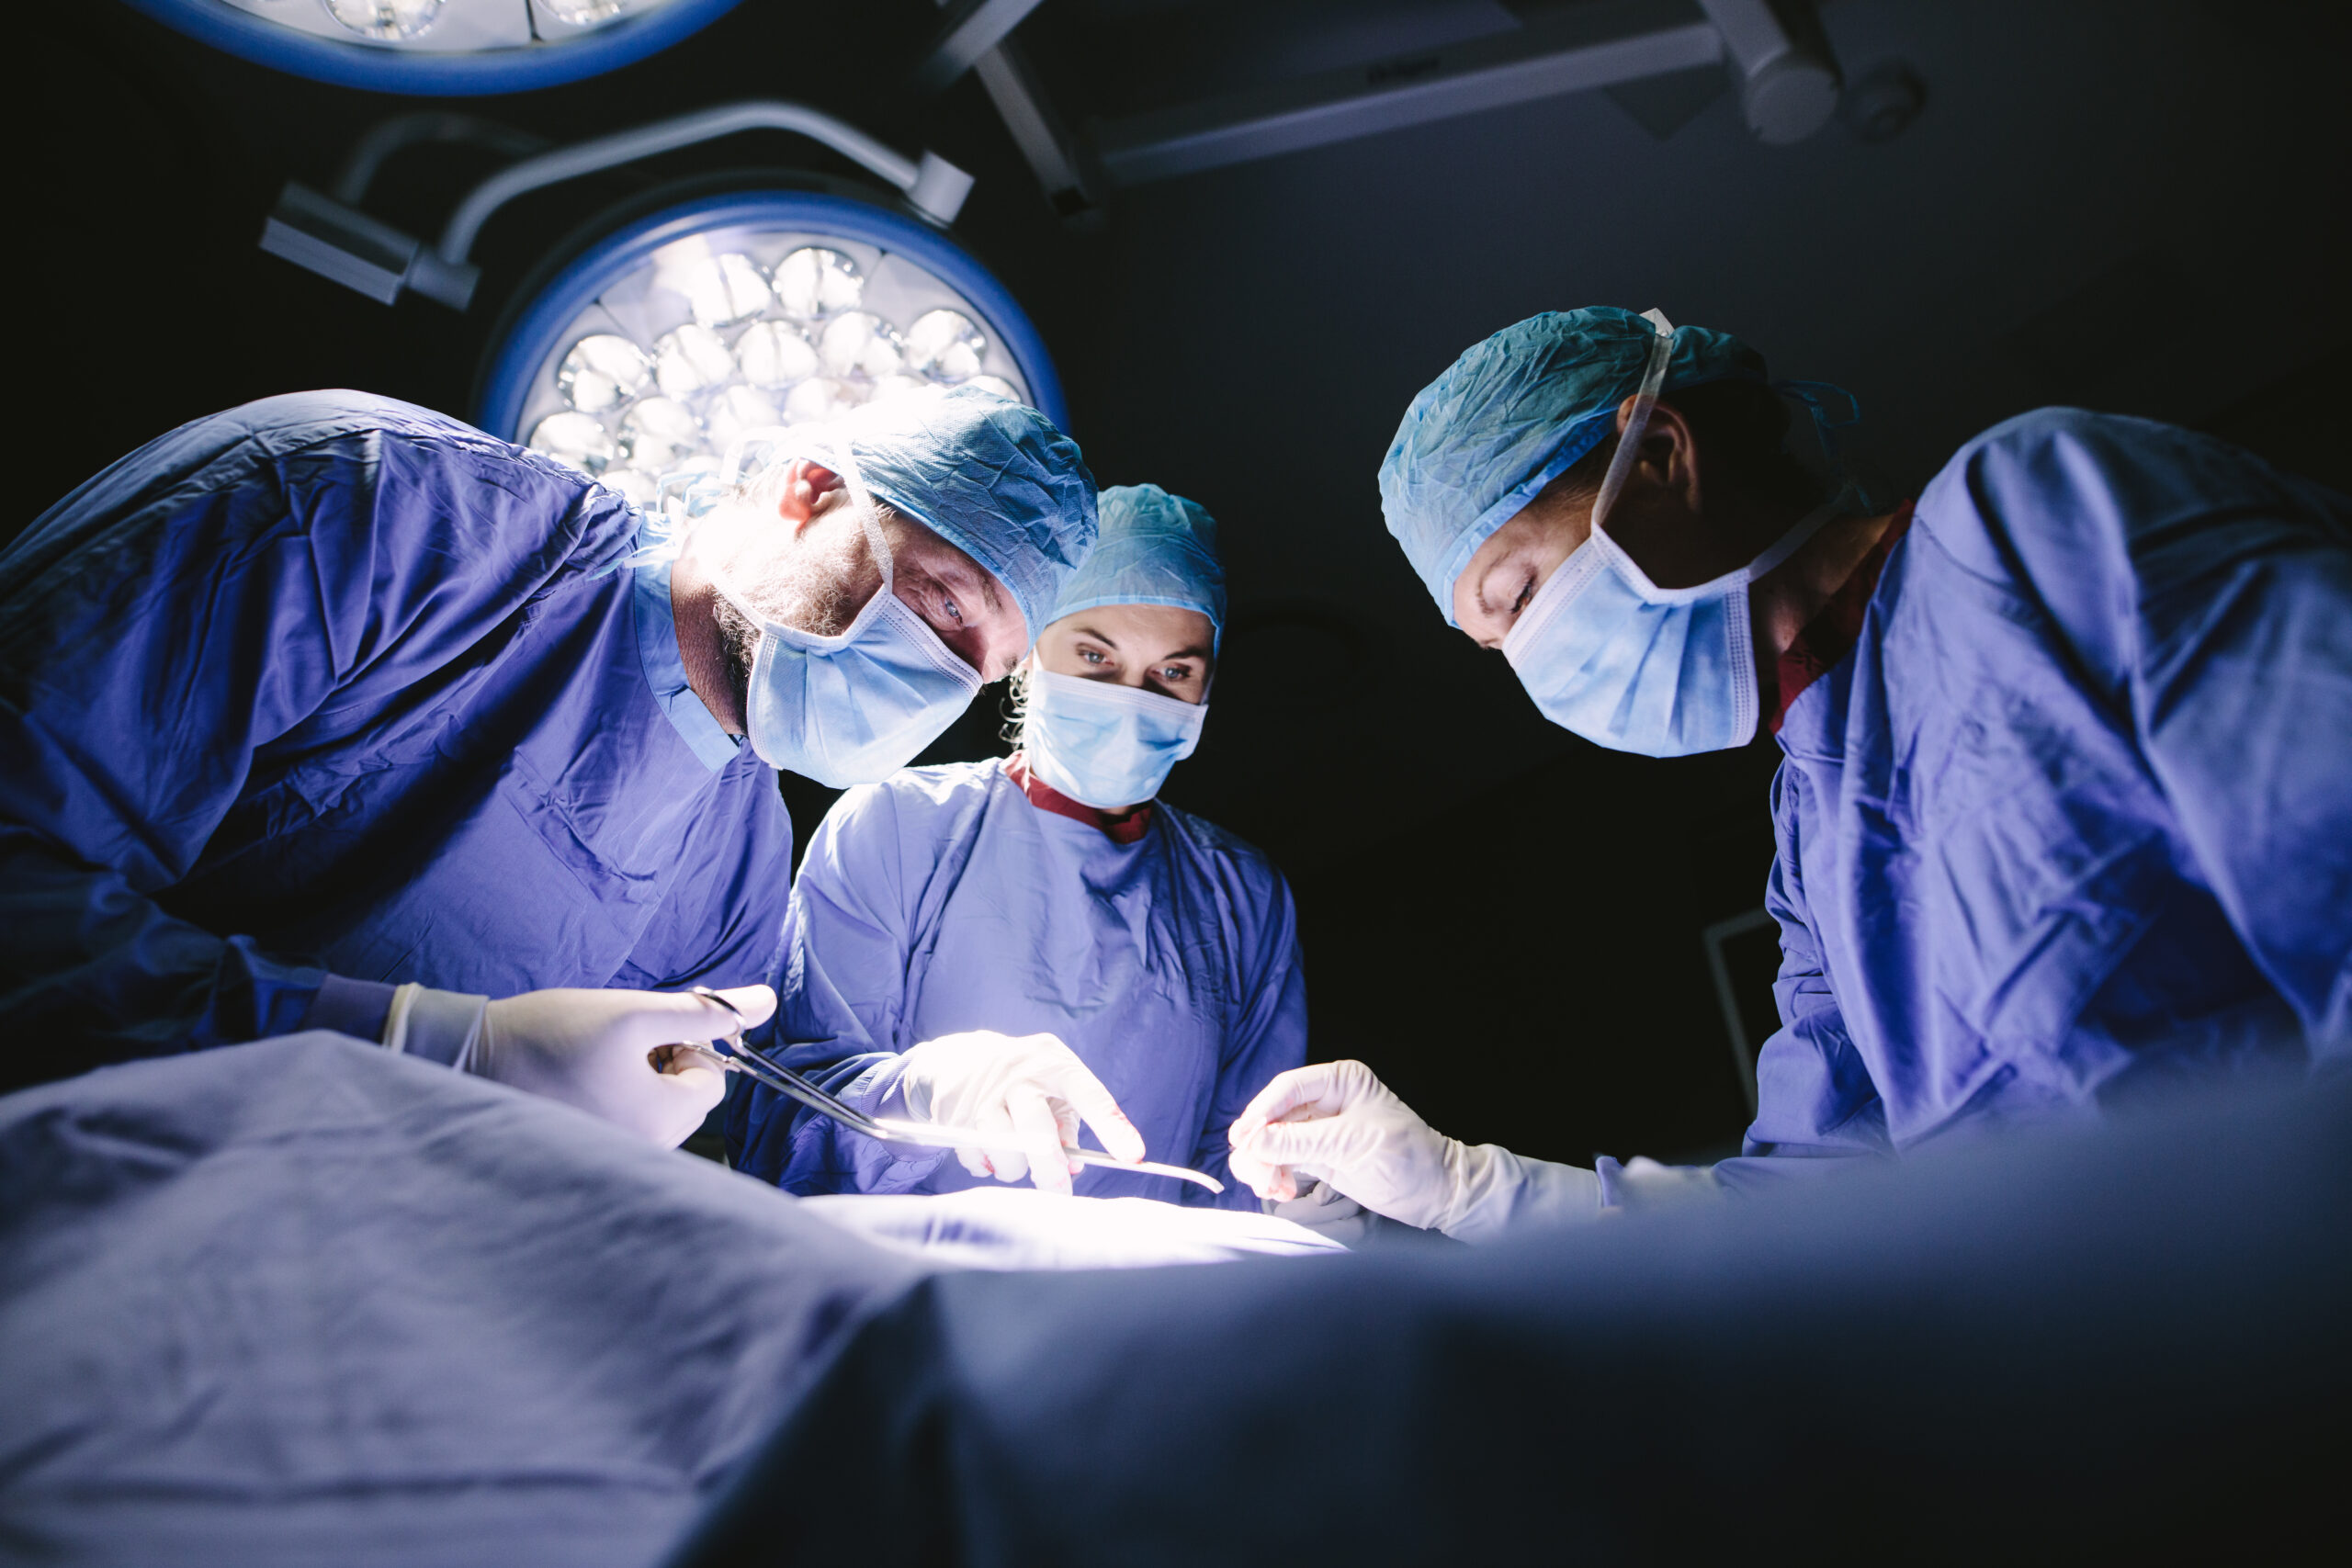 Optimize the Value of Surgical Care